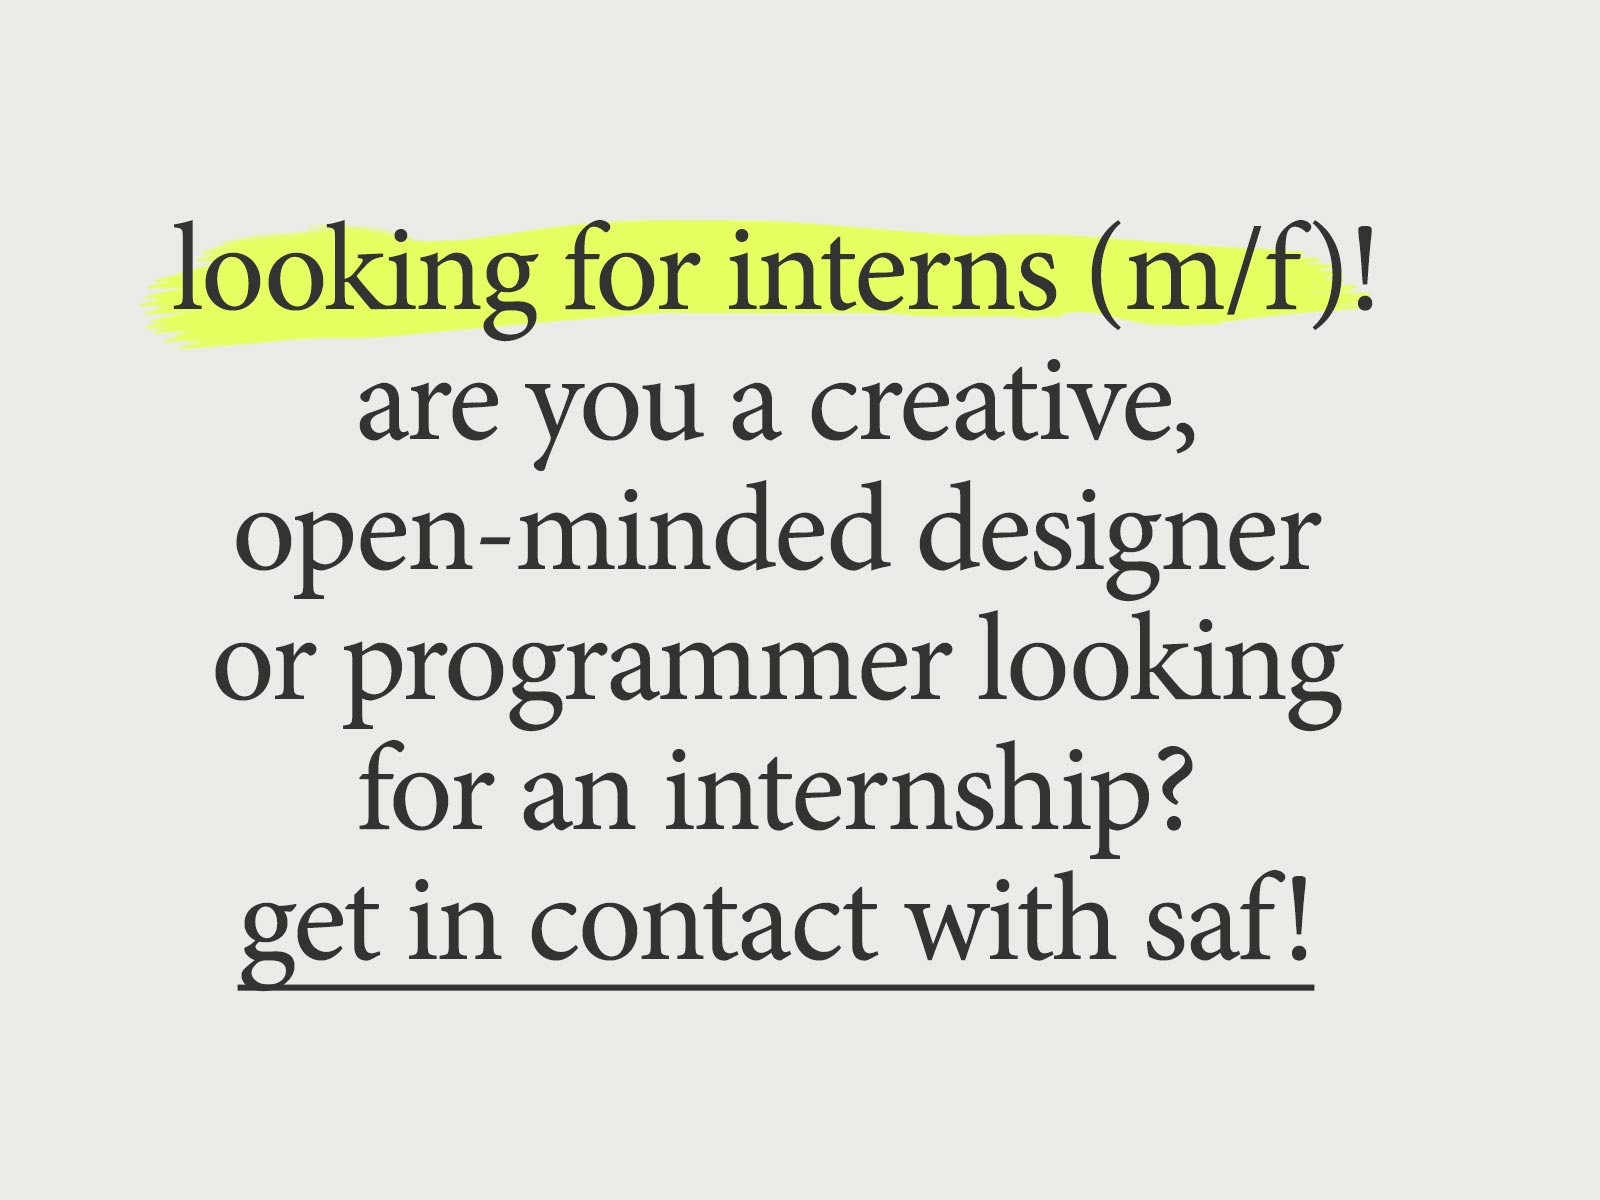 looking for interns!<br>are you a creative, open-minded designer or programmer looking for an internship? get in contact with saf!